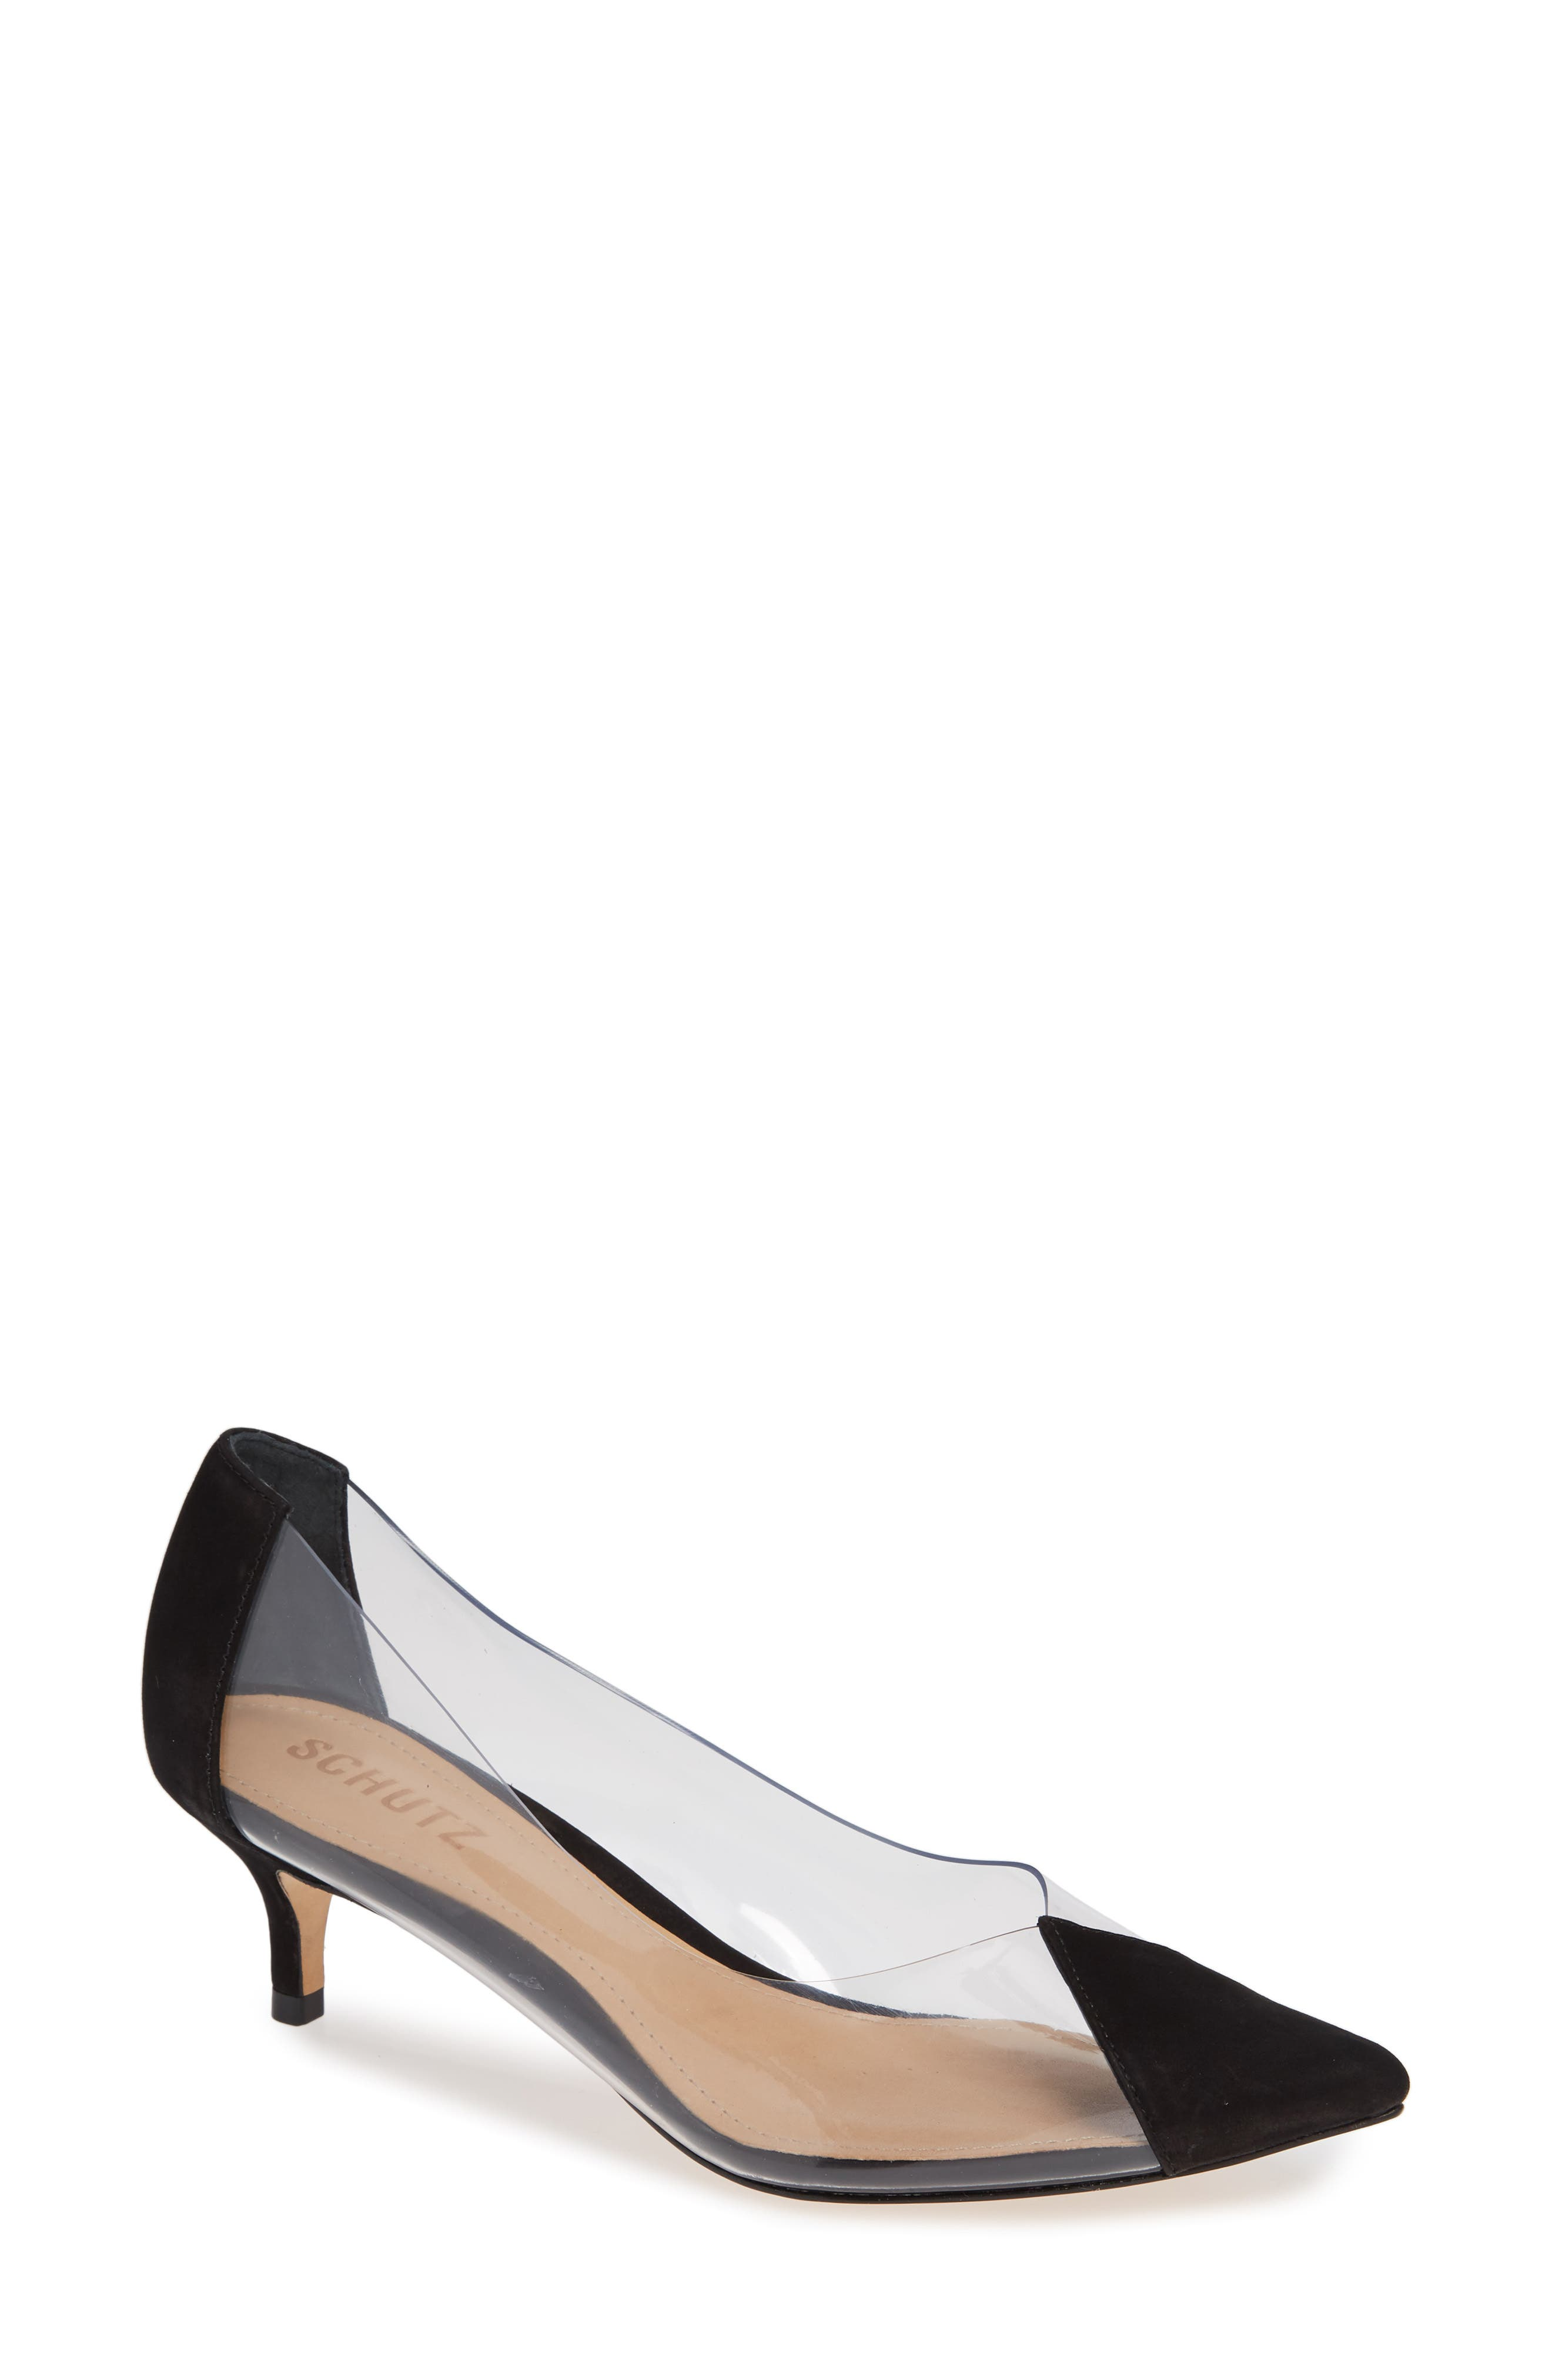 SCHUTZ Cyou Clear Pointy Toe Pump, Main, color, BLACK